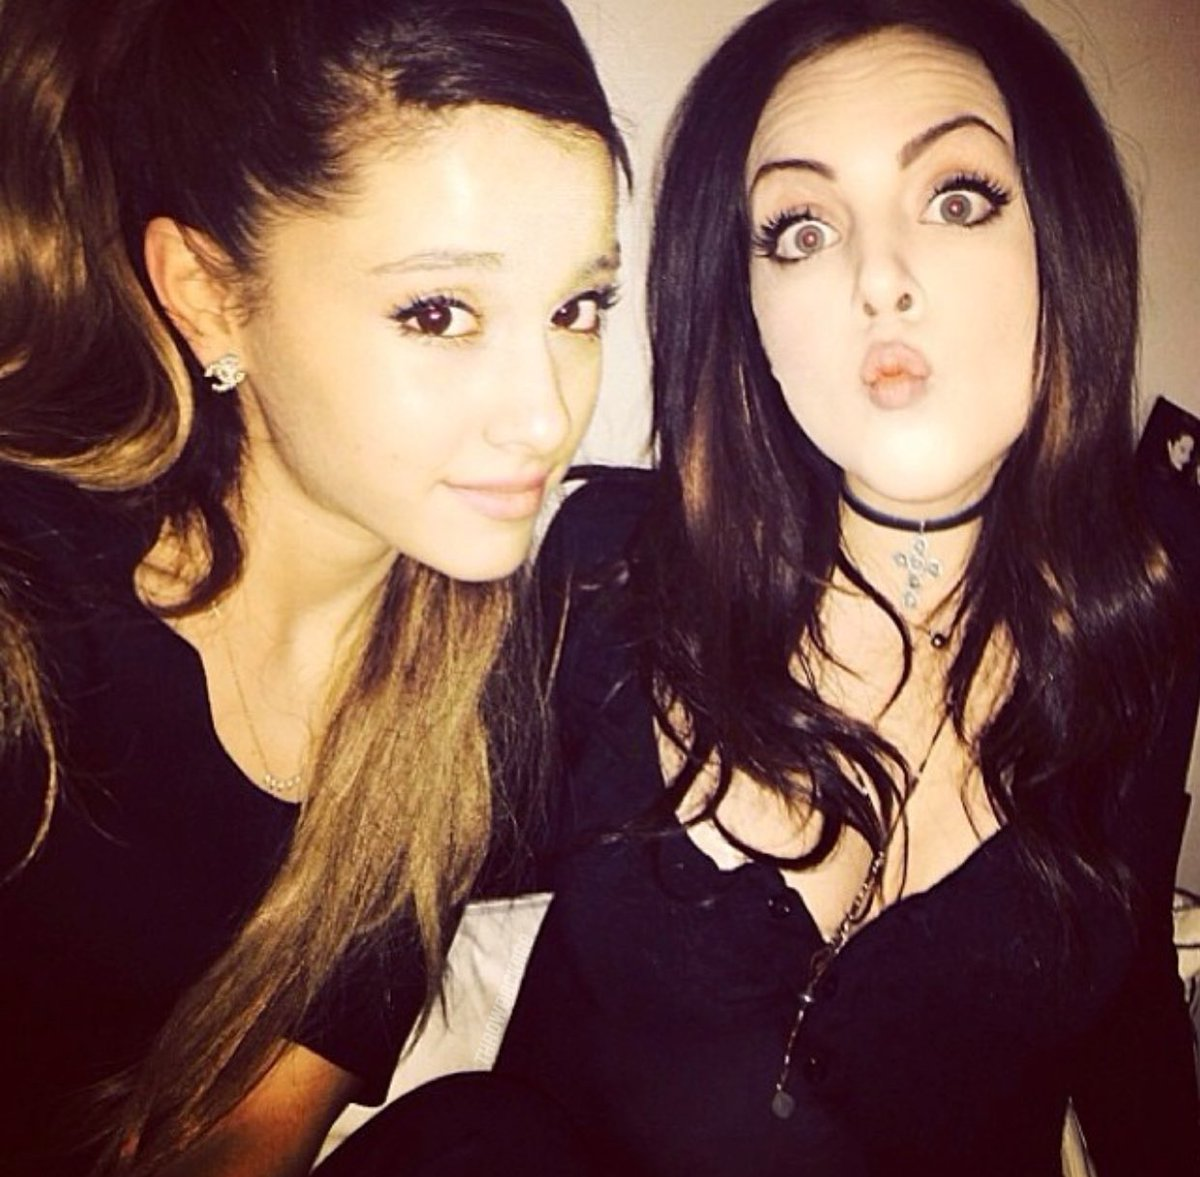 Replying to @throwbackagb: Ariana via Instagram 7 years ago today 'foreva' (19th January 2014)